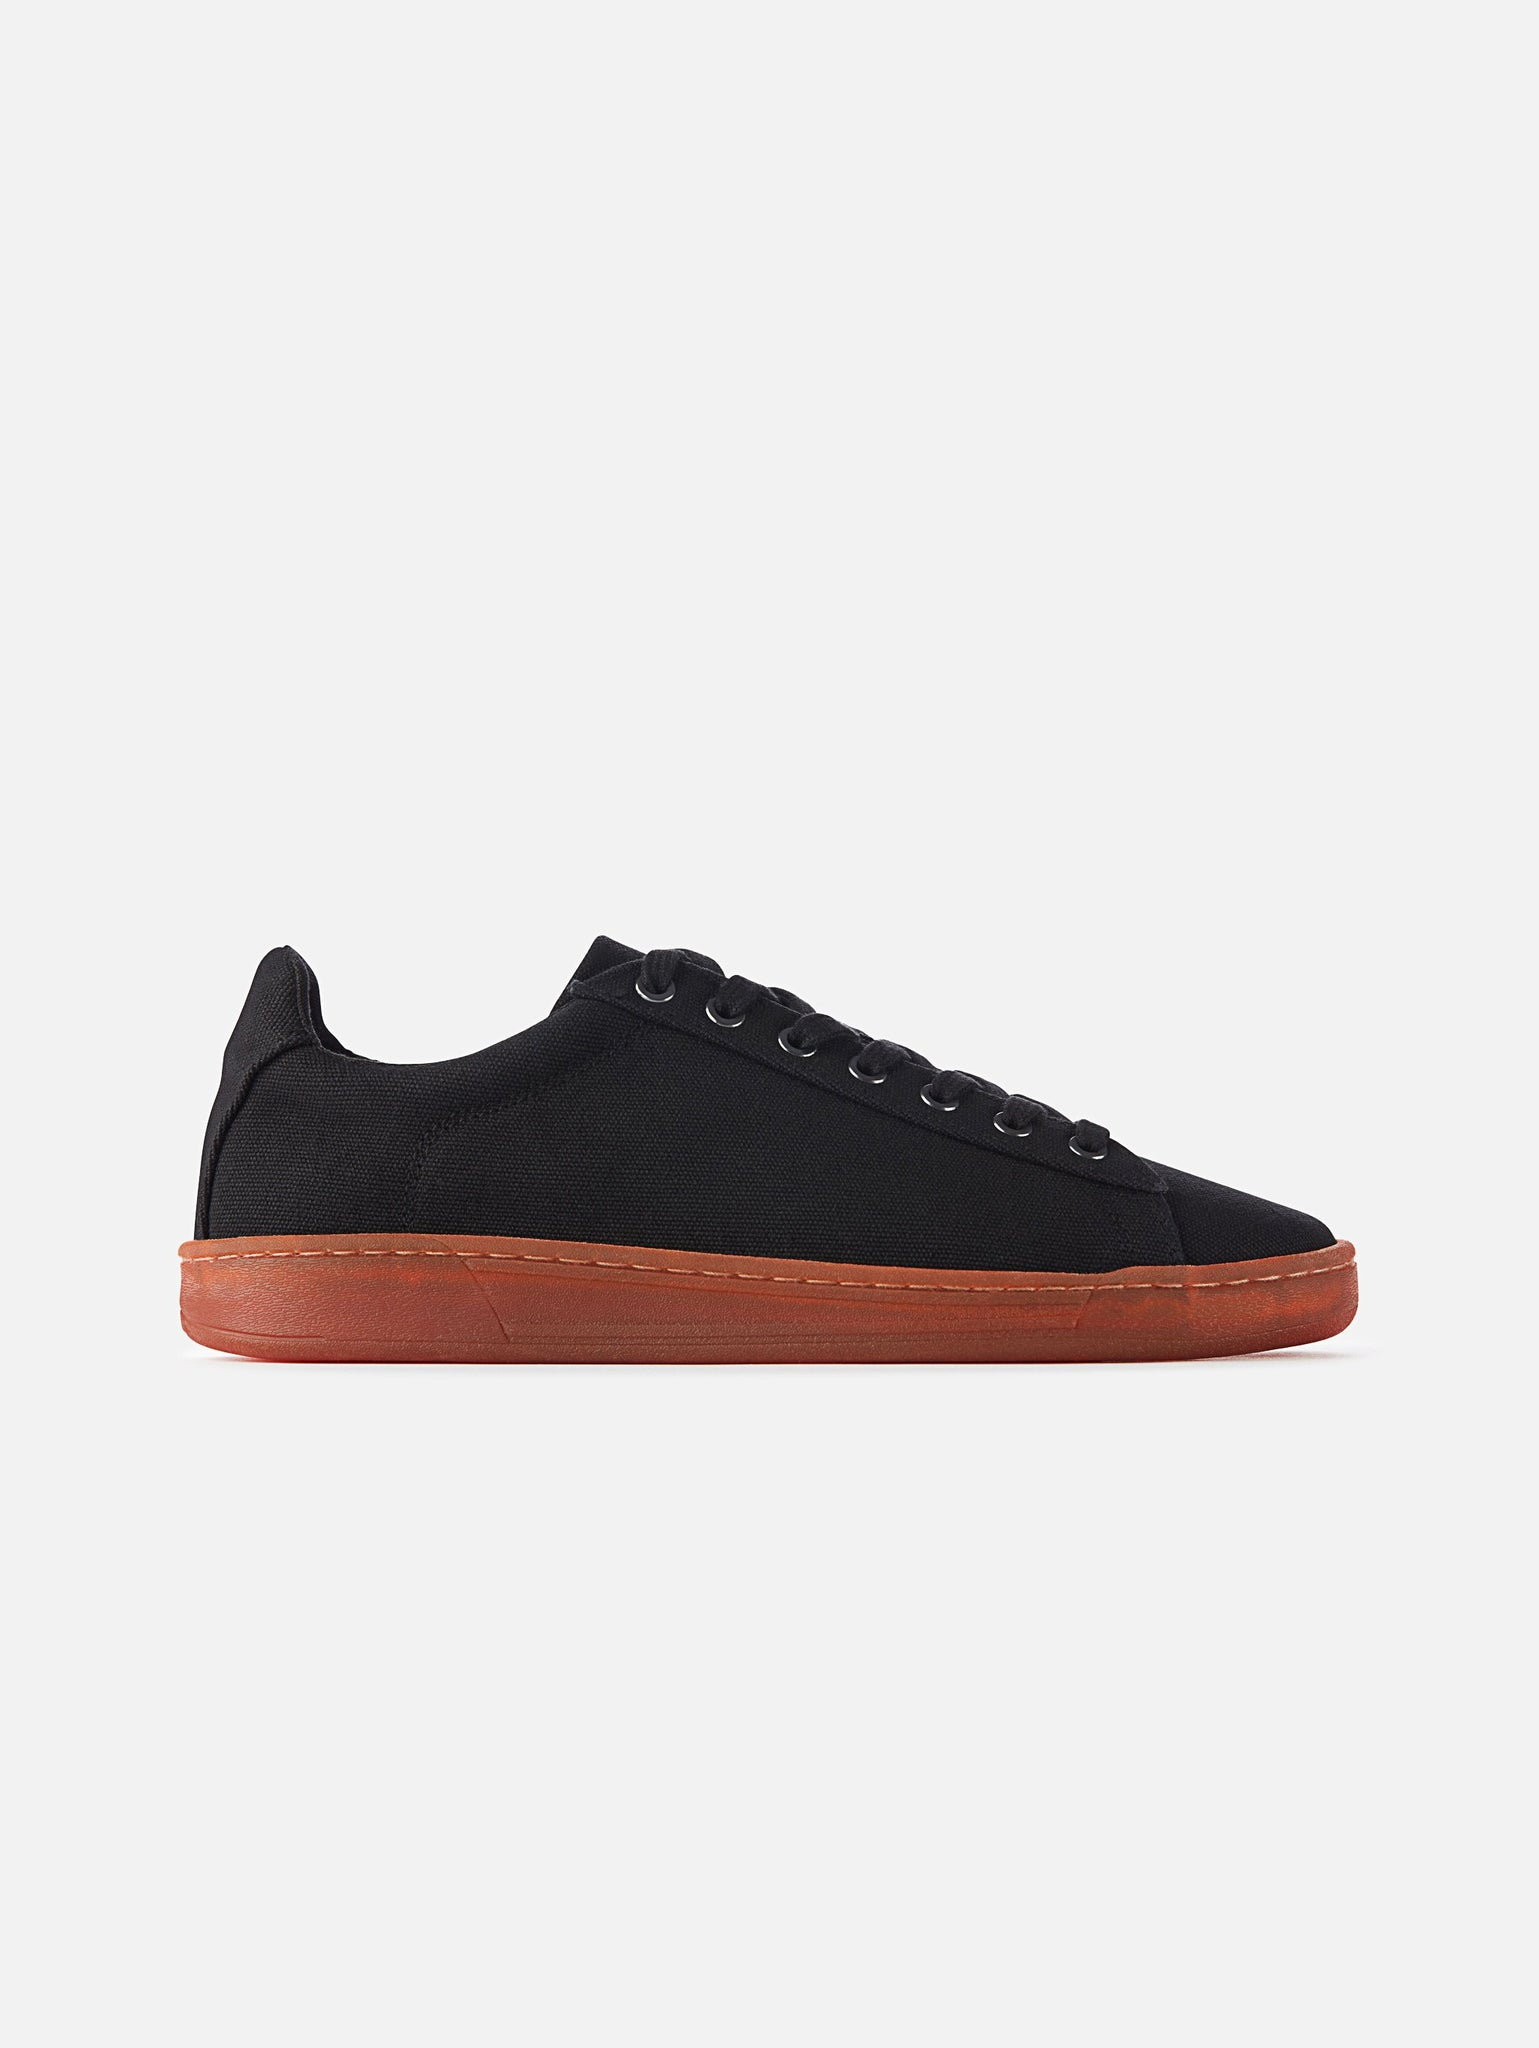 Hope - Vegan Black/Red Canvas Shoe